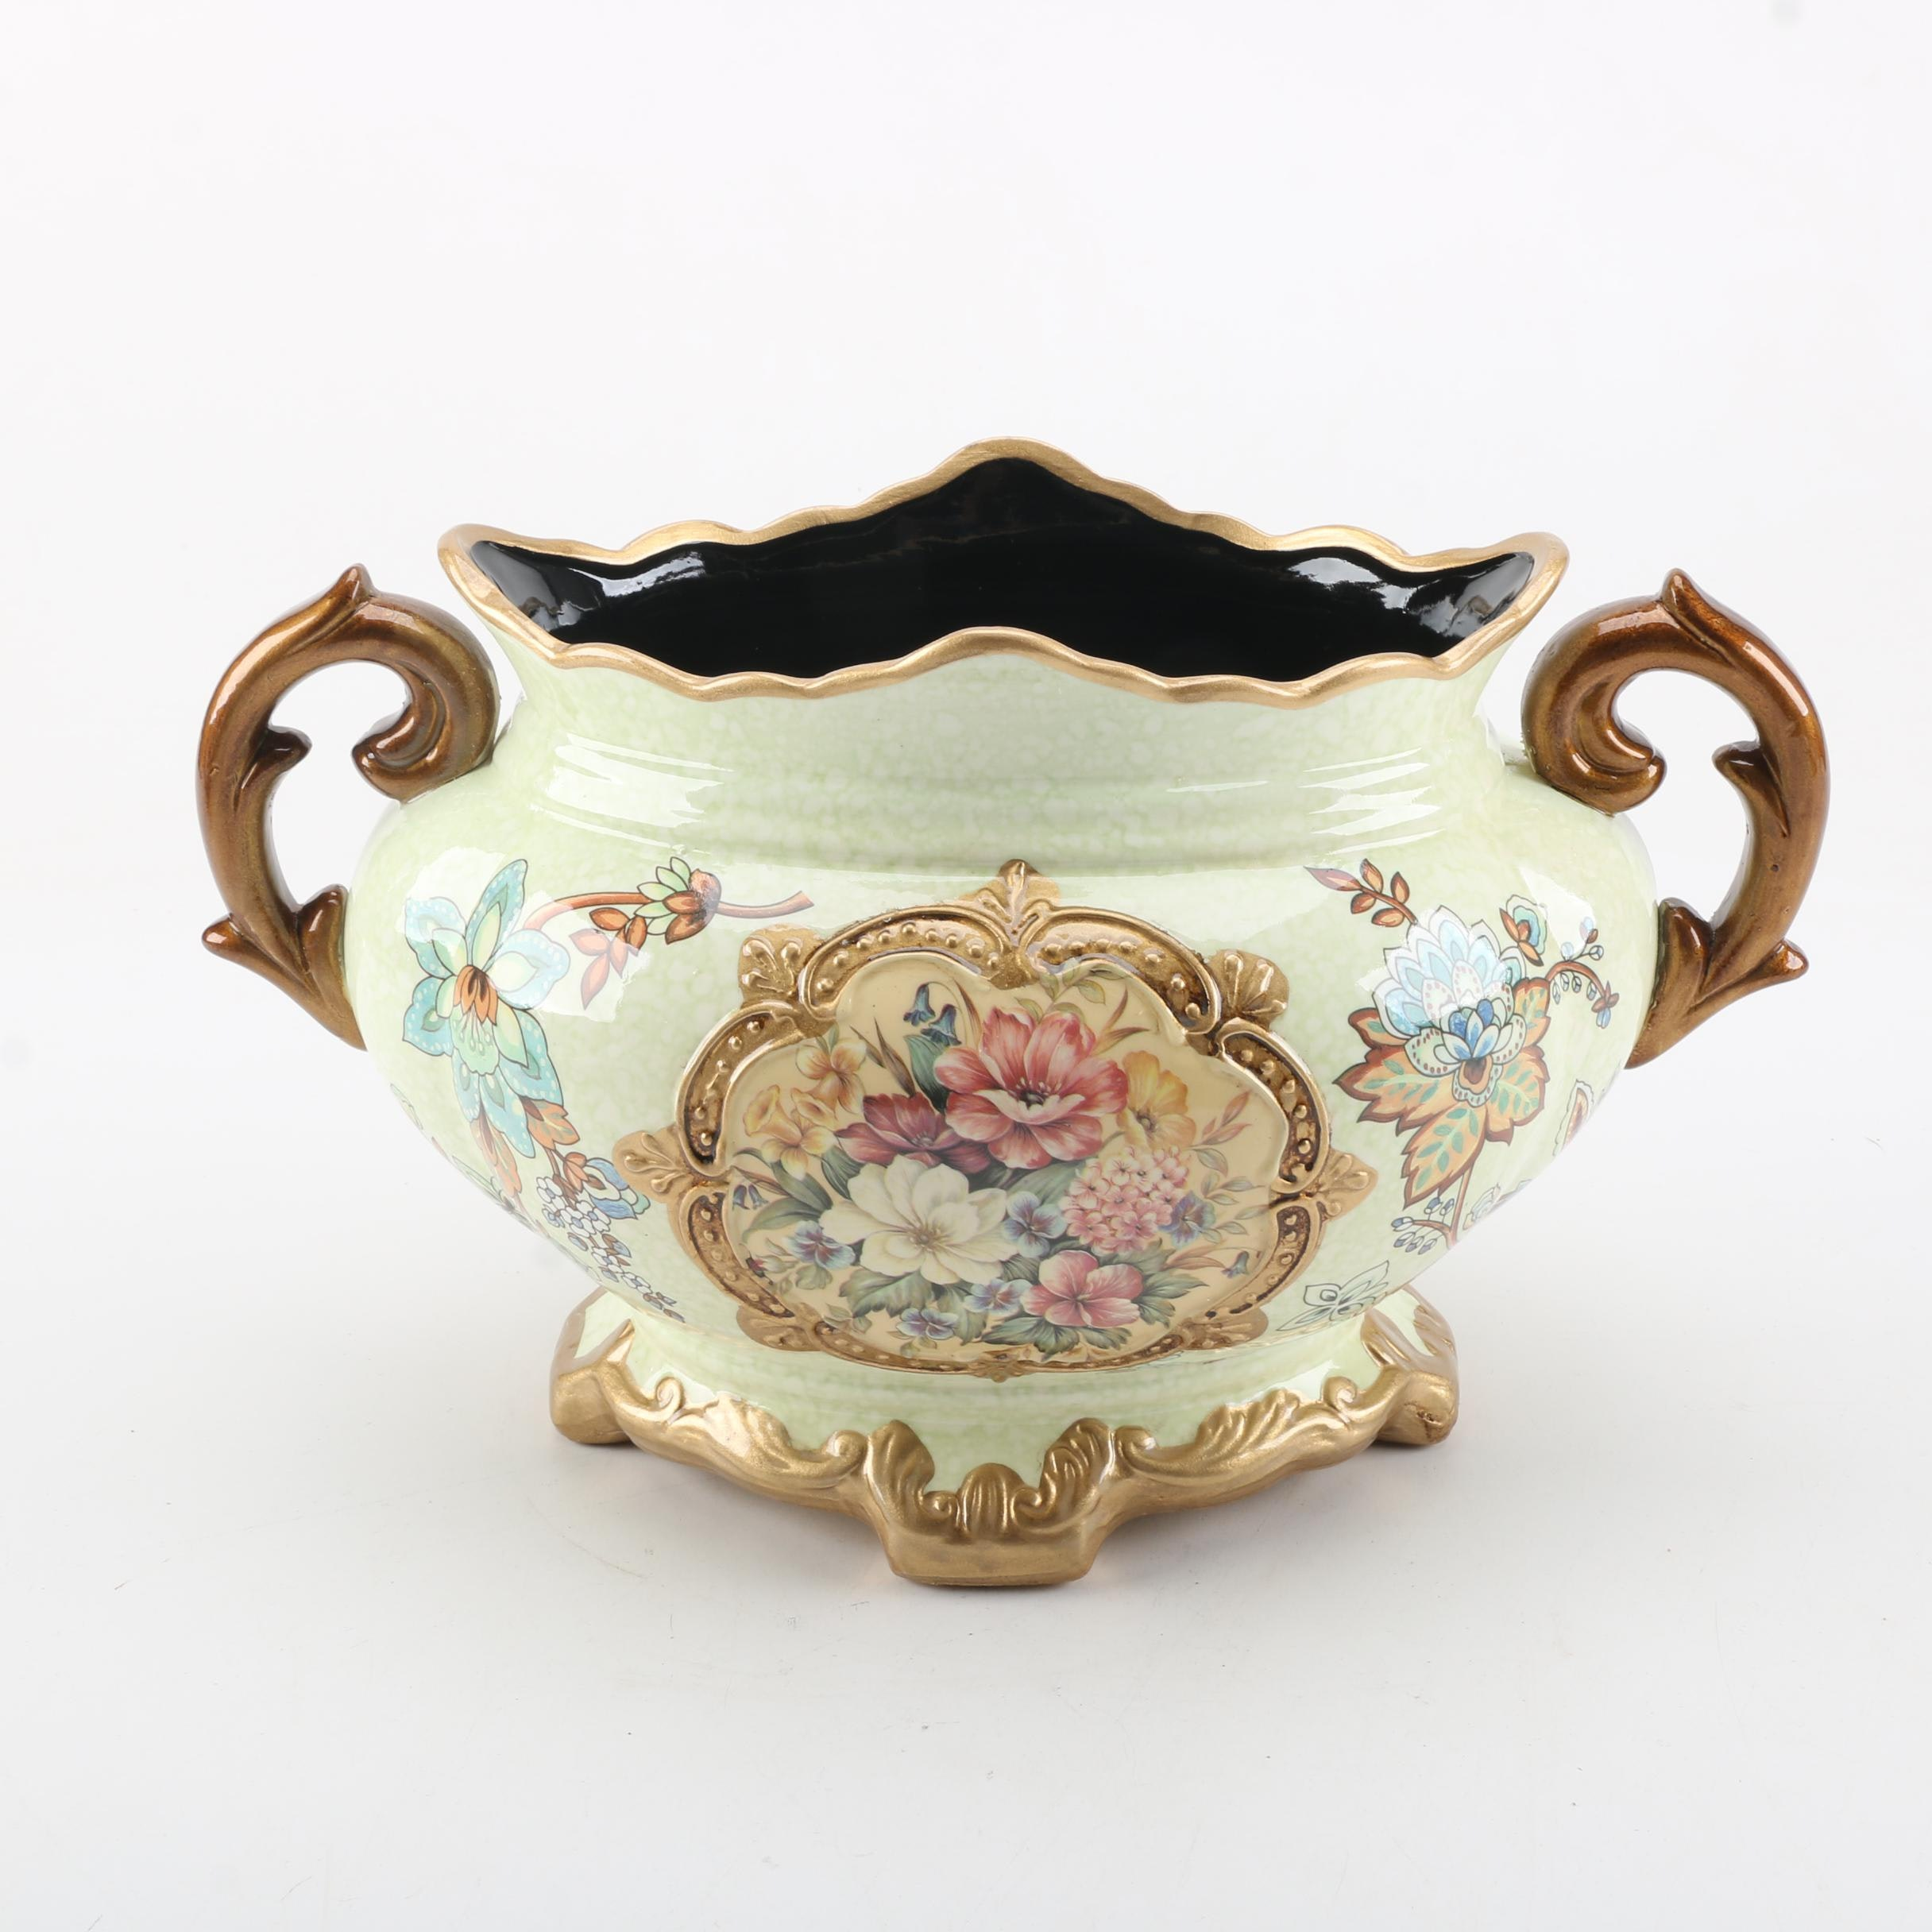 Decorative Ornate Hand Painted Ceramic Jardiniere